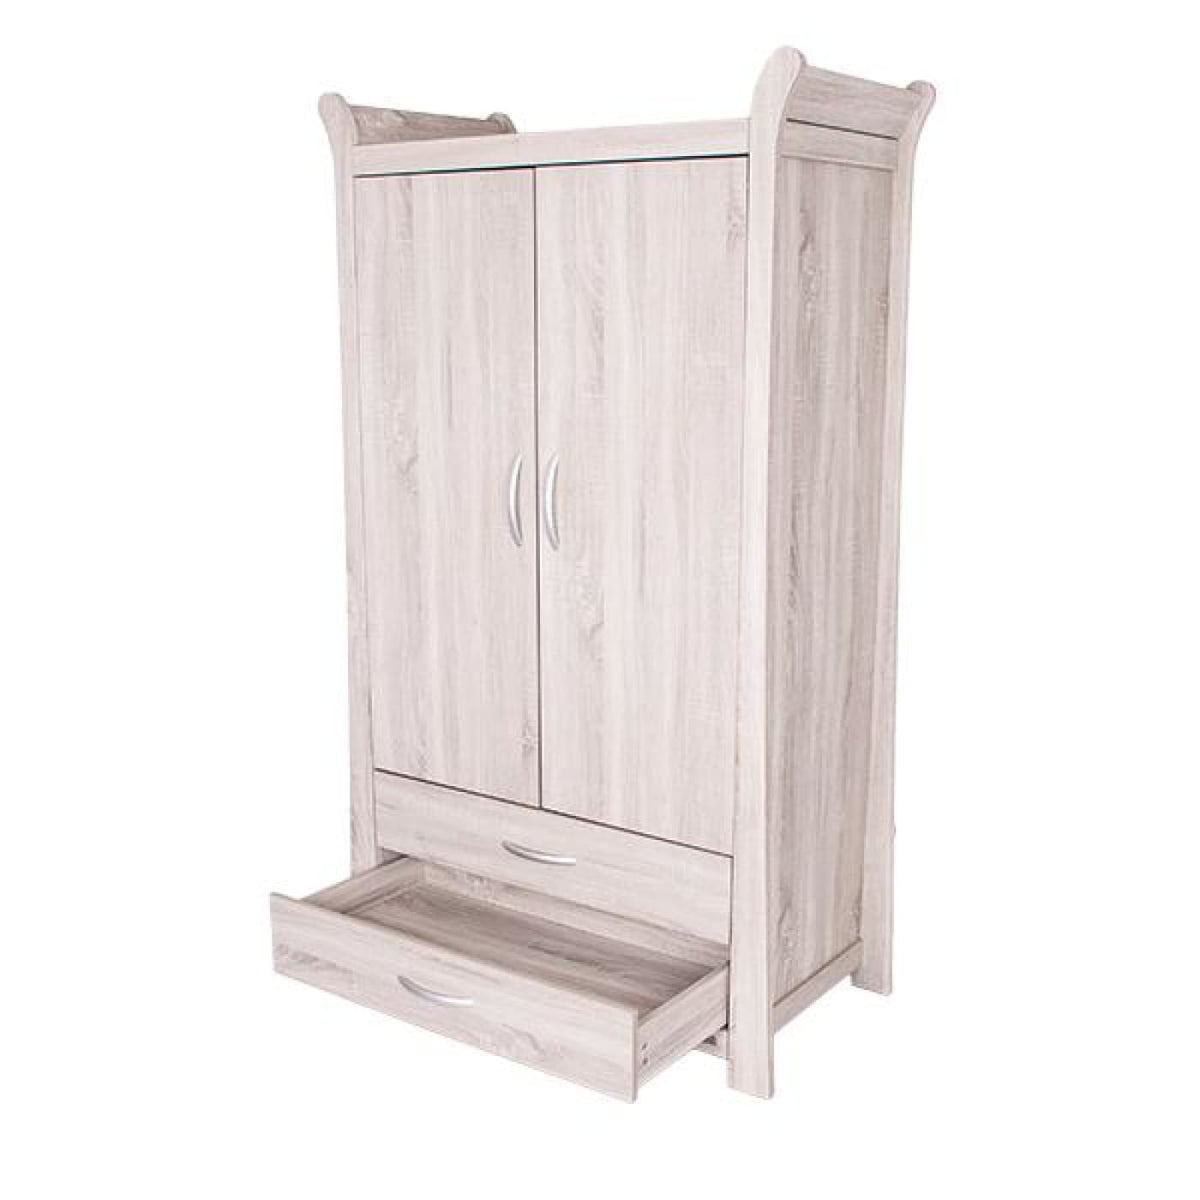 Love N Care Noble Wardrobe (Regal) - Ash - NURSERY & BEDTIME - WARDROBES